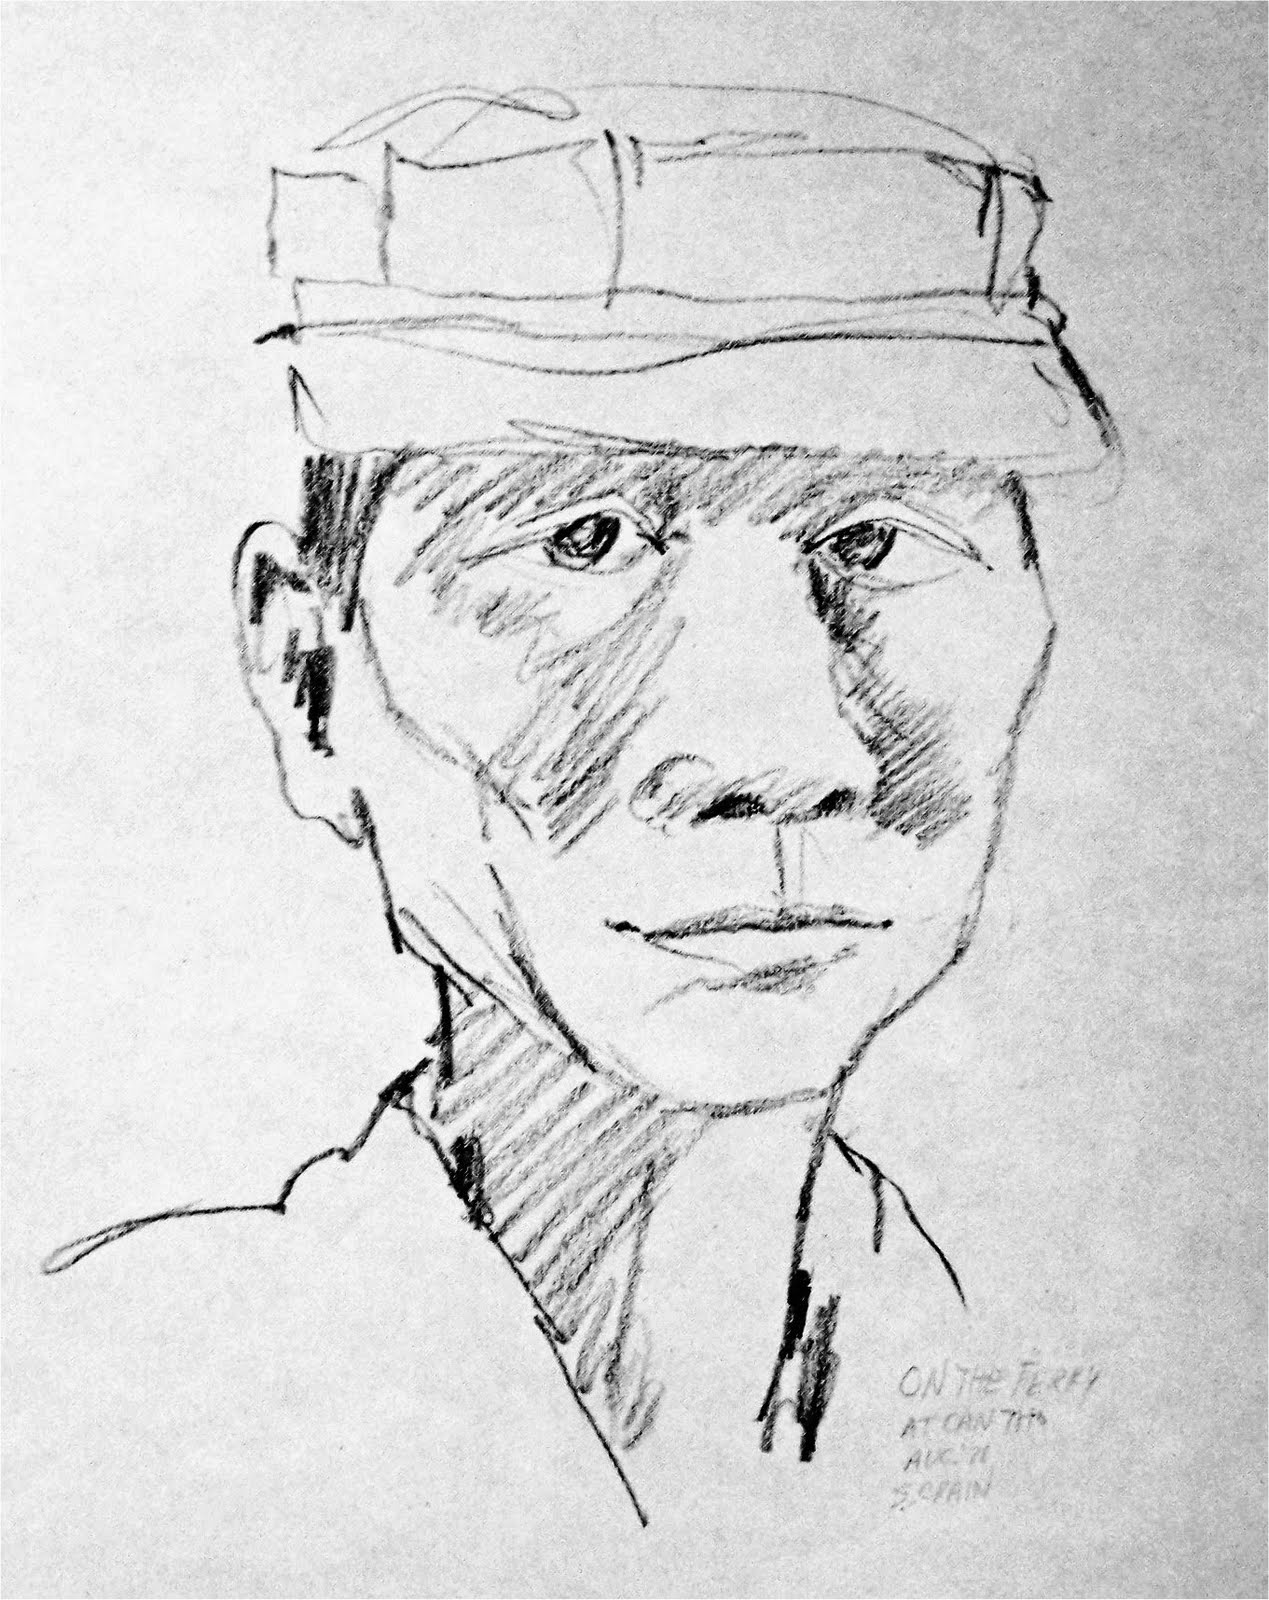 Vietnam Drawings: South Vietnamese Soldier